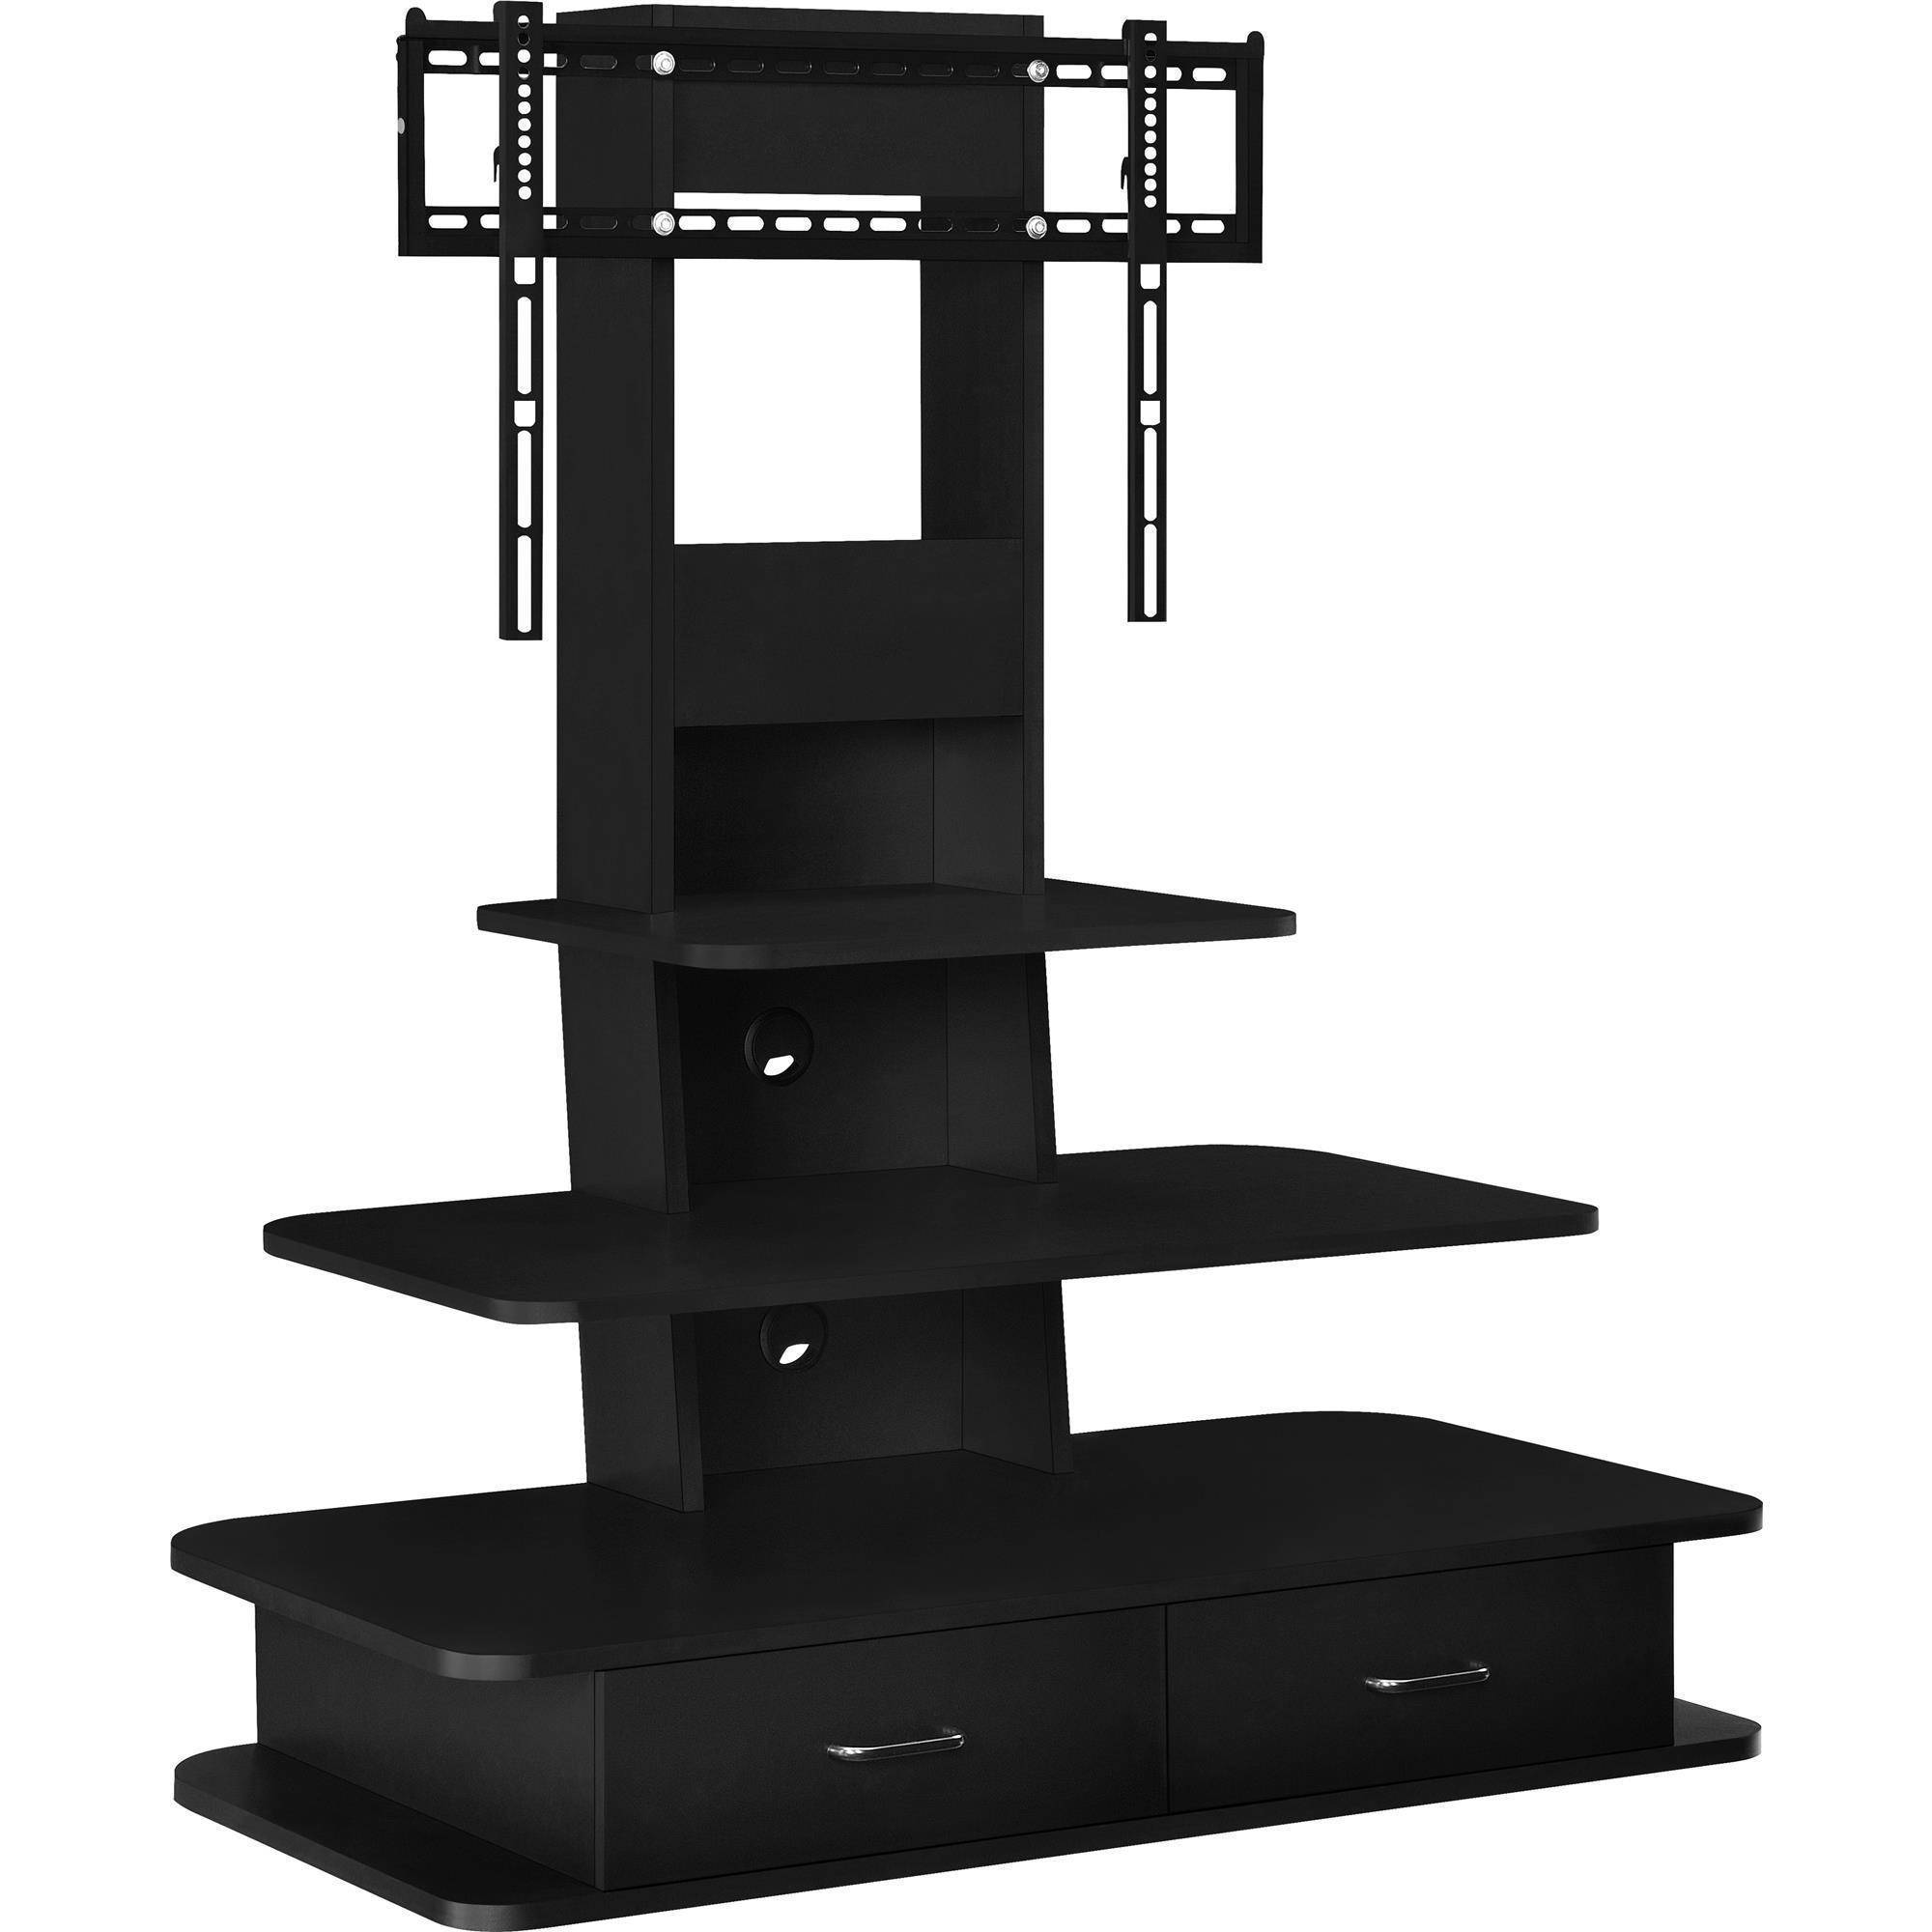 Large Entertainment Center Corner 65 Inch Tall 70 TV Stand 55 Best Heavy Dut  eBay